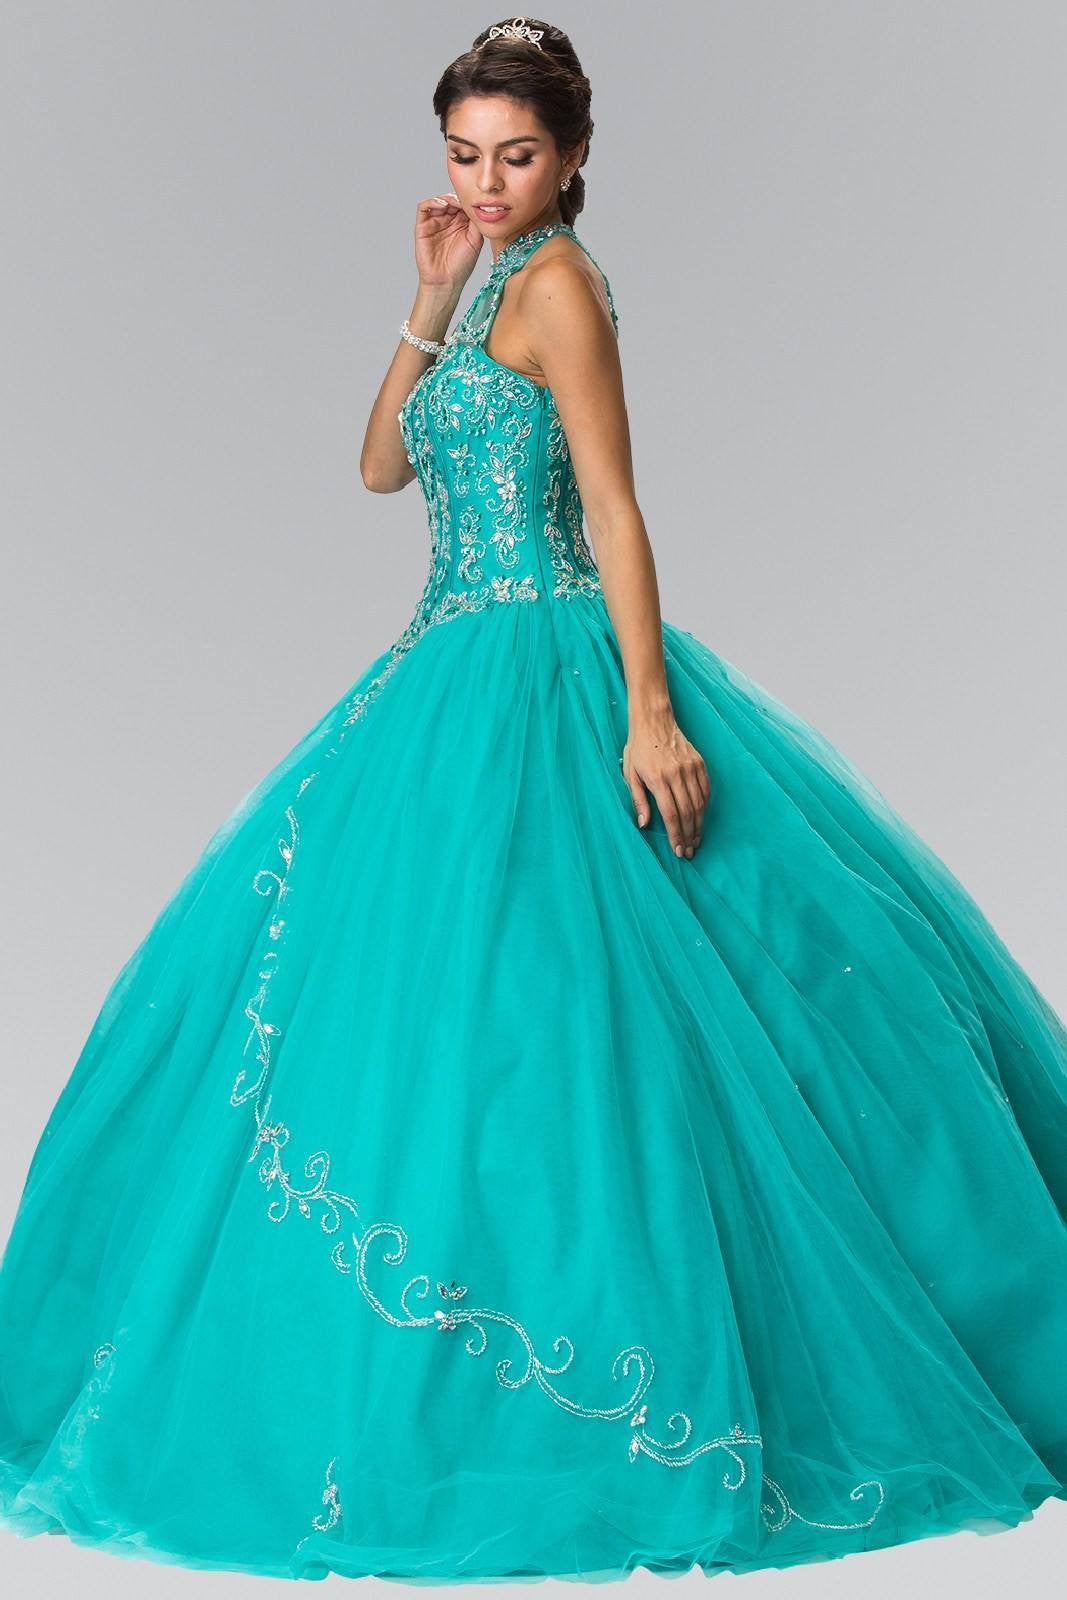 2019 year looks- Dresses turquoise for sweet 16 photo